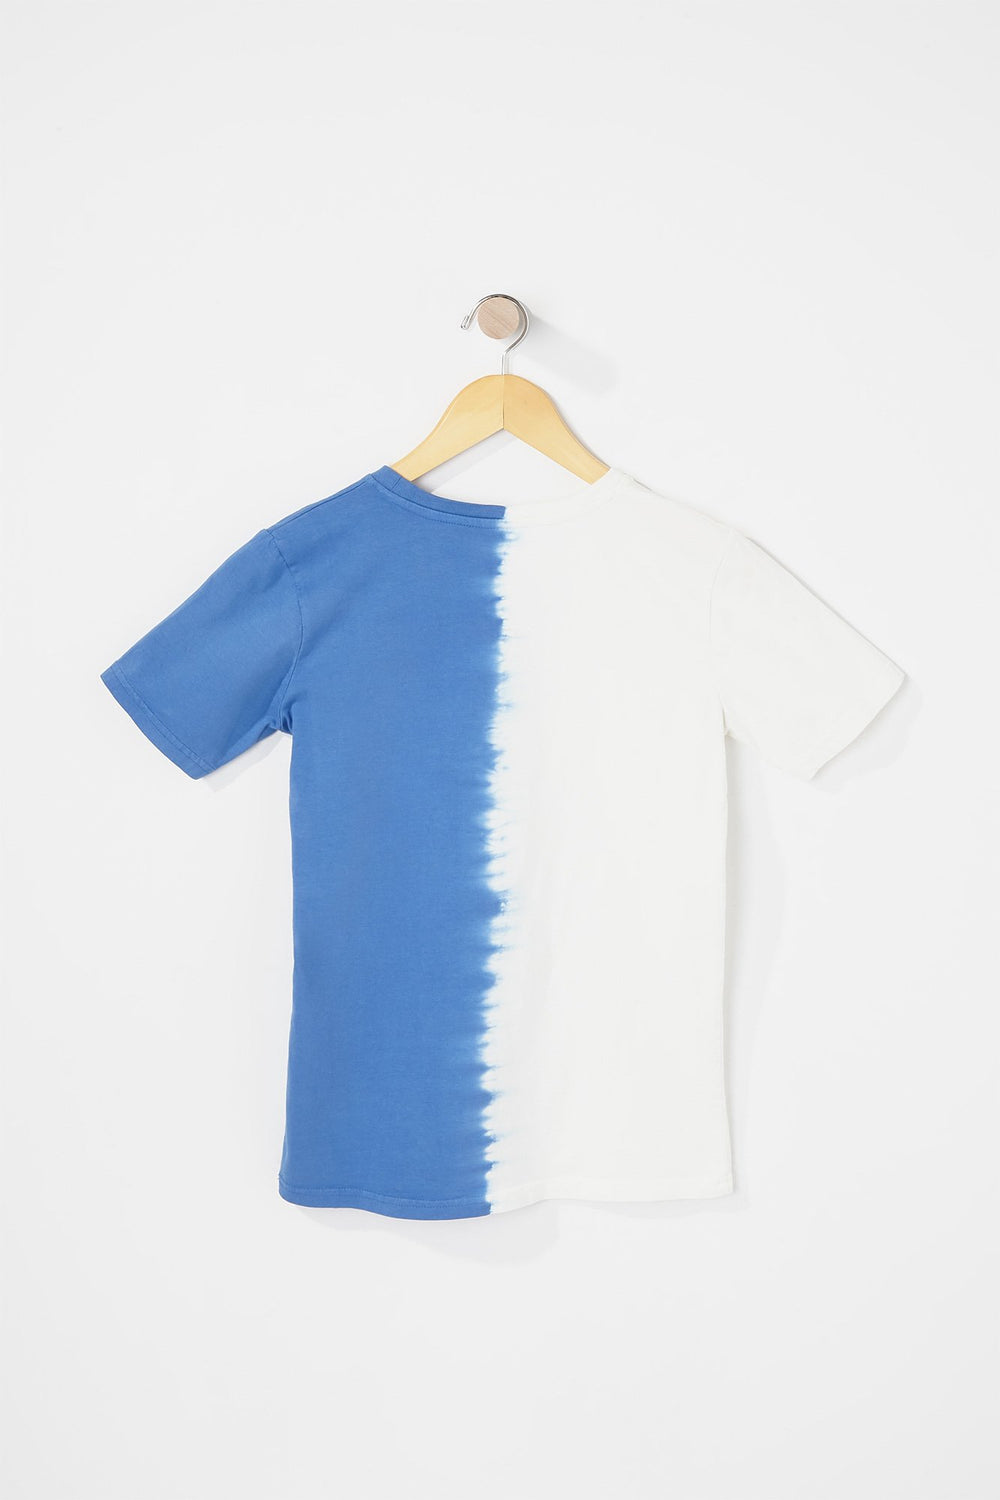 West49 Boys Box Logo Tie Dye T-Shirt Blue